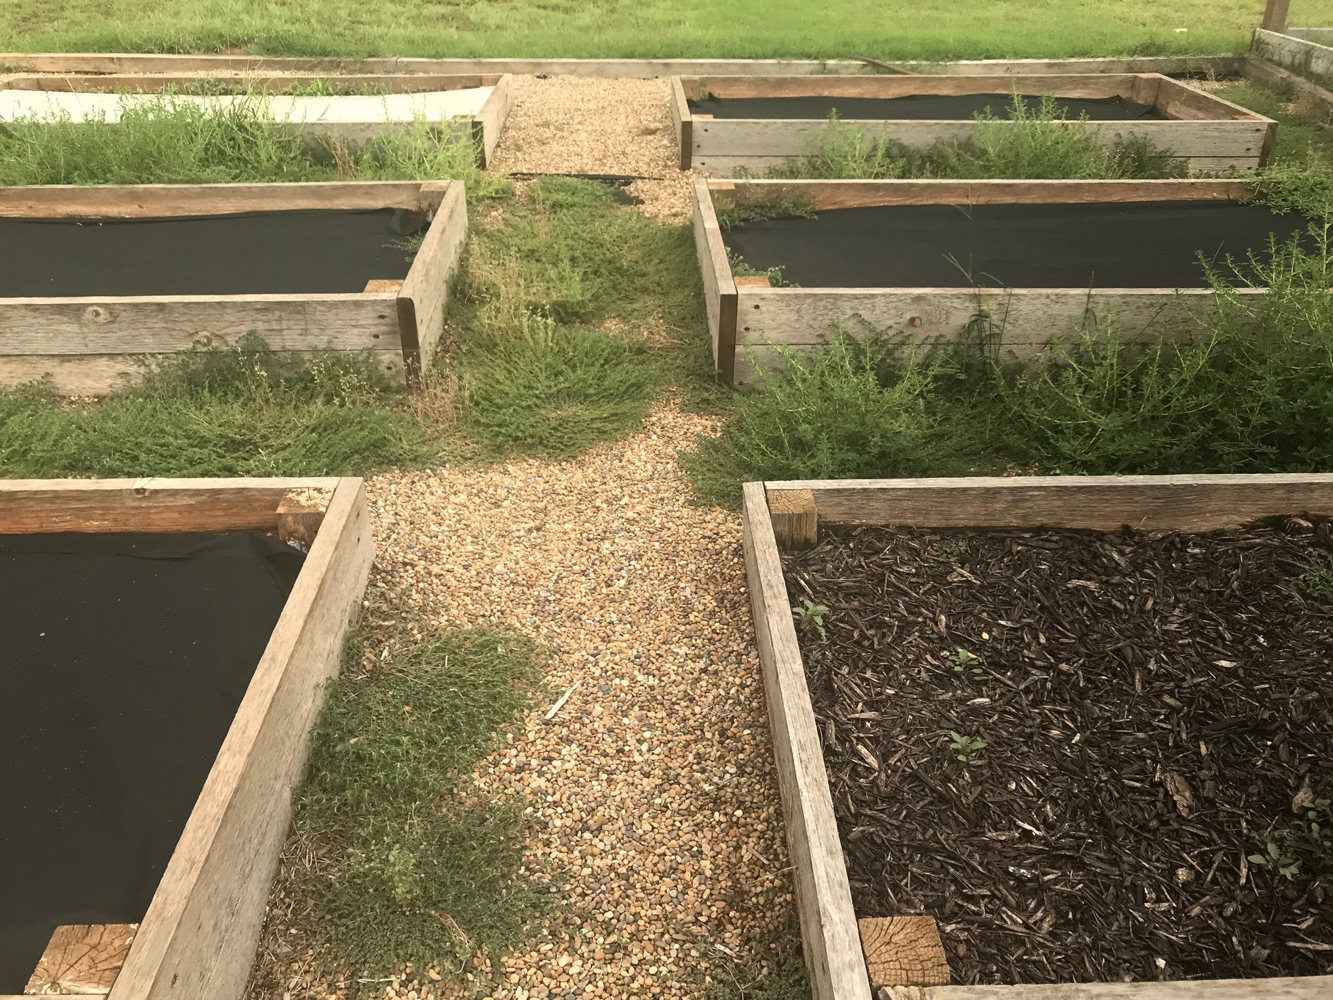 The raised beds are weed free but the walkway is covered in weeds.